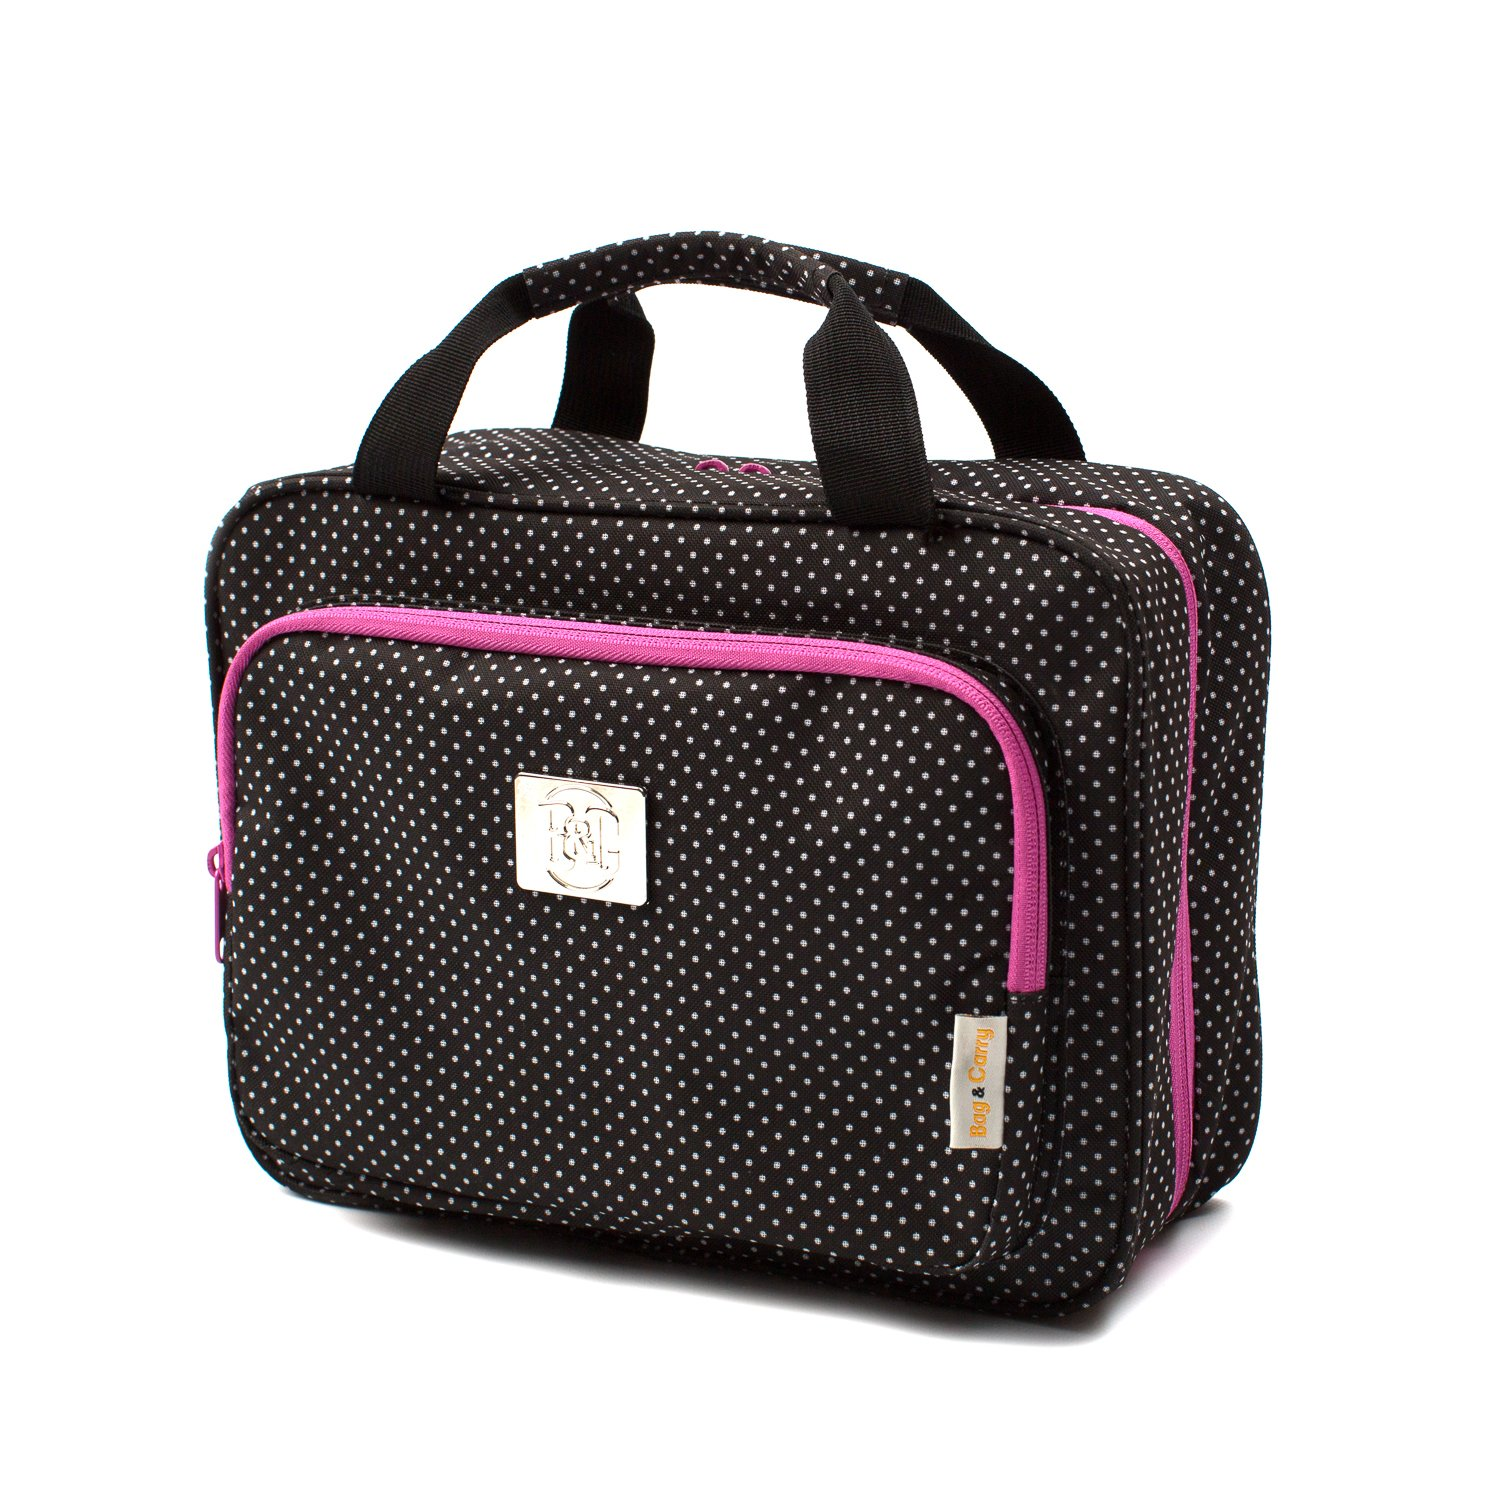 Large Polka Dot Travel Cosmetic Bag - Large Hanging Travel Toiletry And Cosmetic Organizer With Many Pockets (polka dot) by Bag&Carry